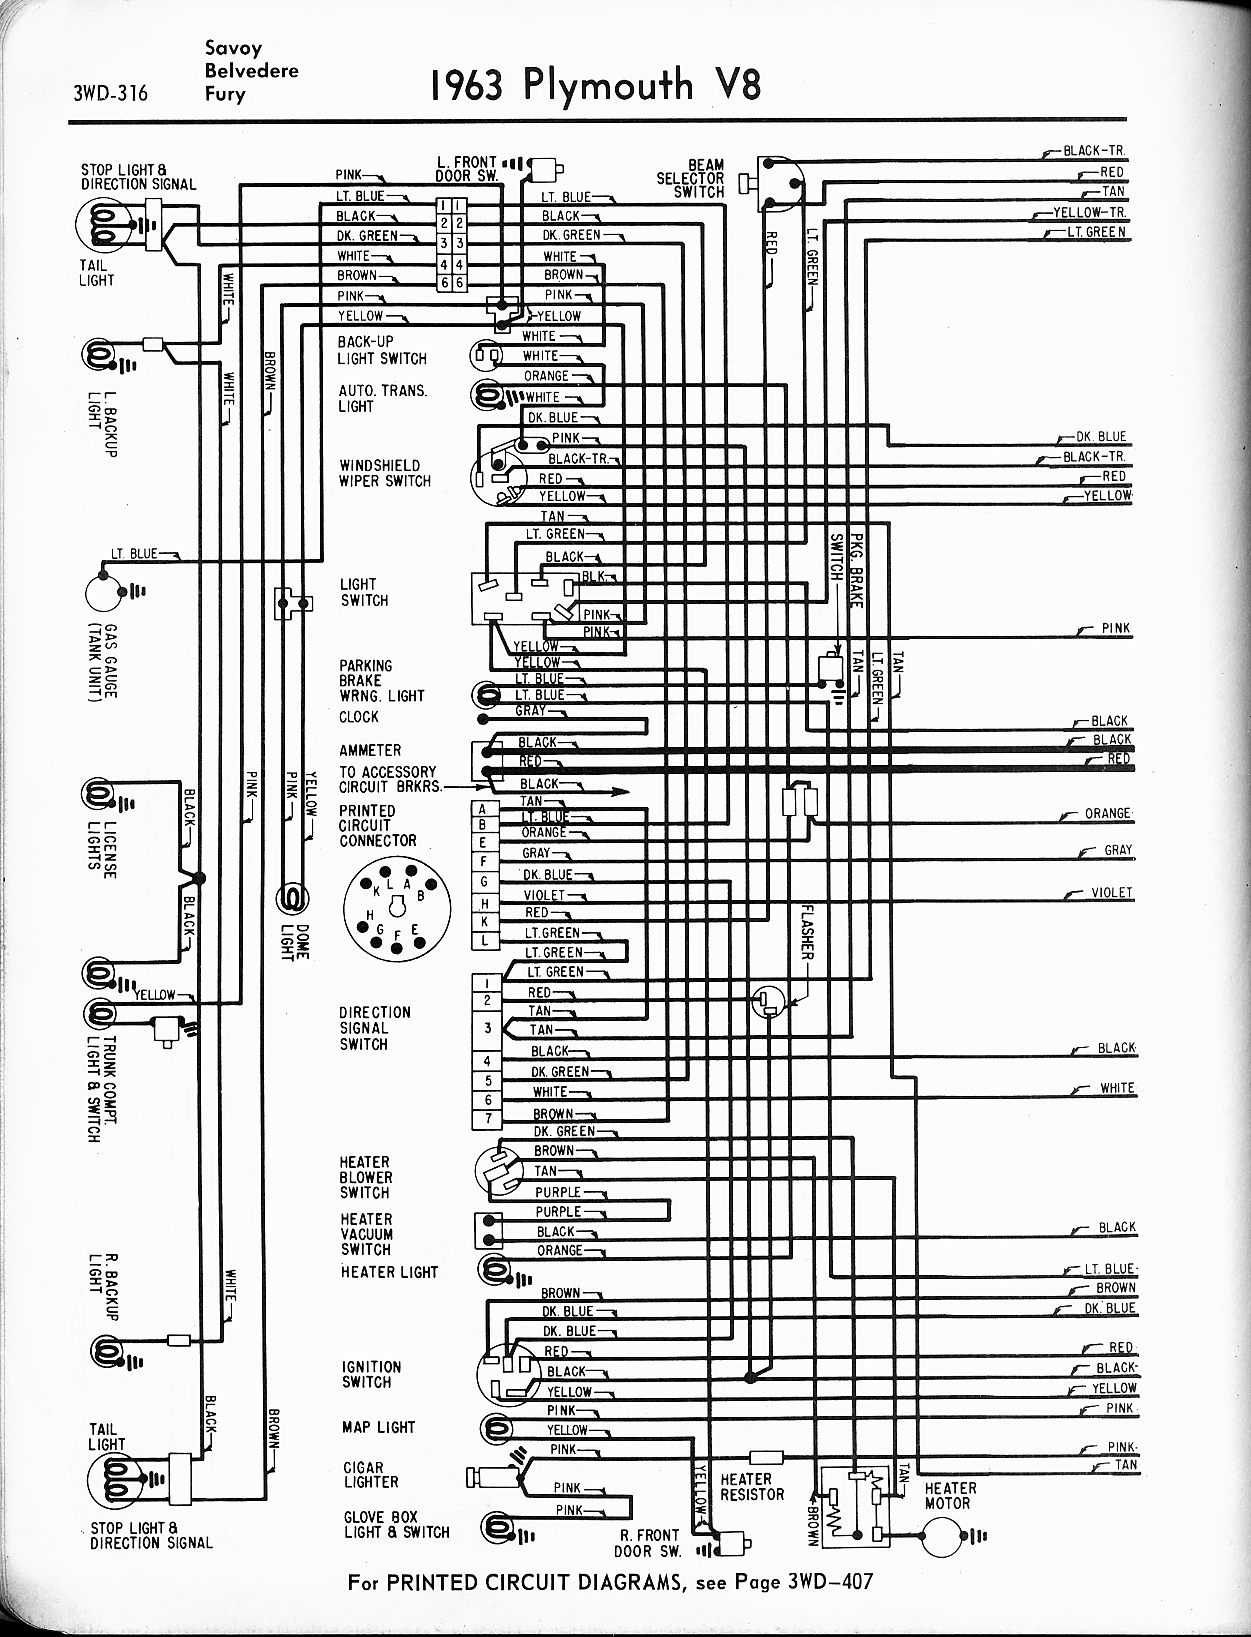 3800 Series 2 Wiring Diagram 28 Images 1998 Buick Regal Engine Mwire5765 316 1956 1965 Plymouth The Old Car Manual Project Free